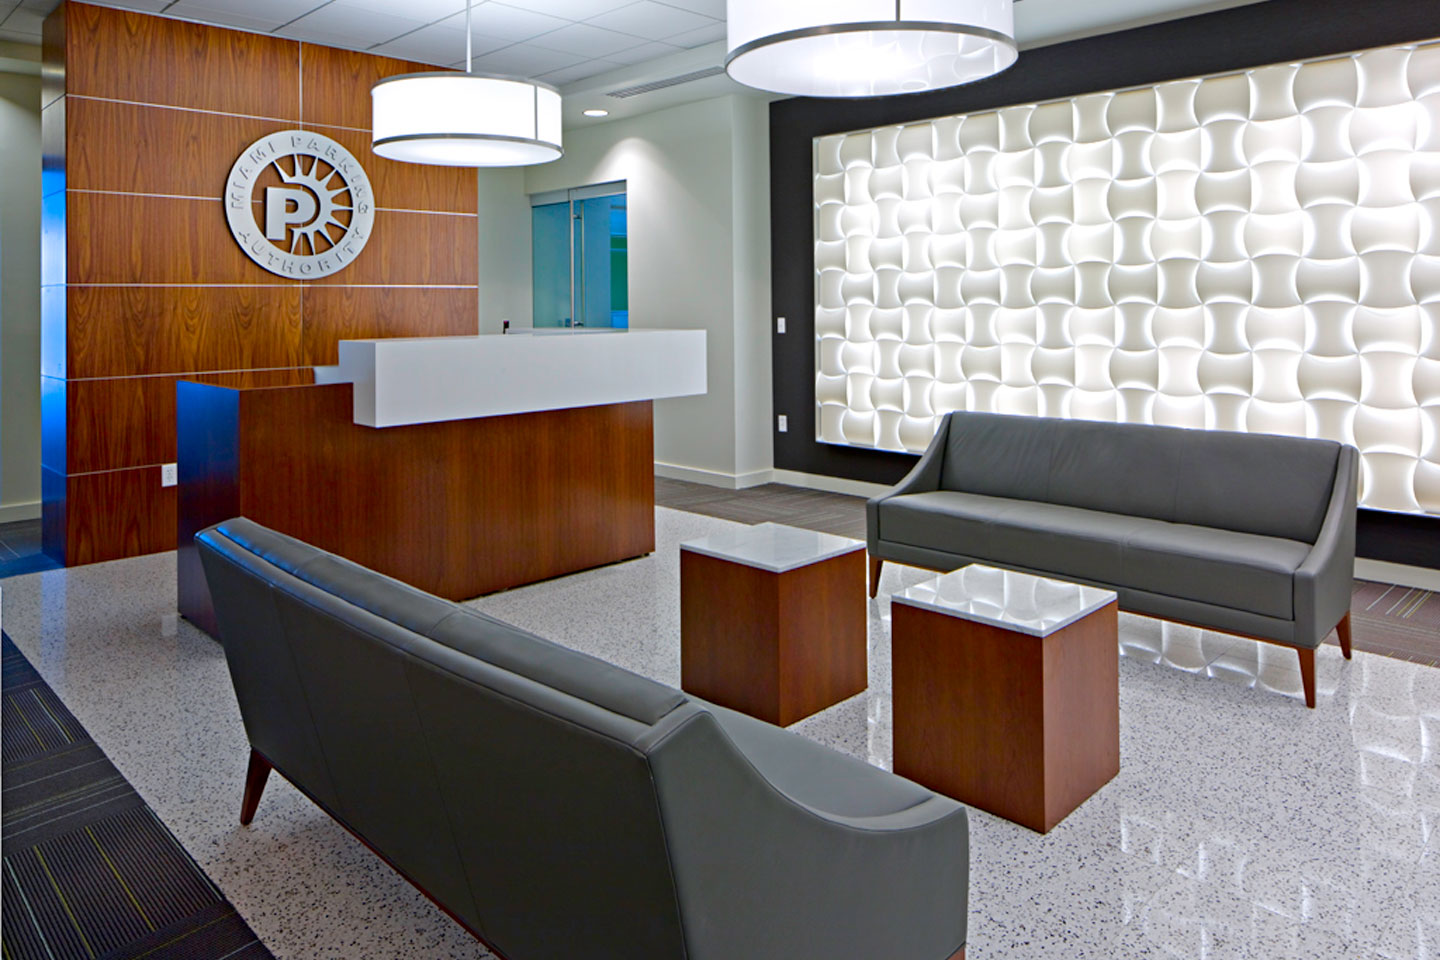 photo of the miami parking authority office